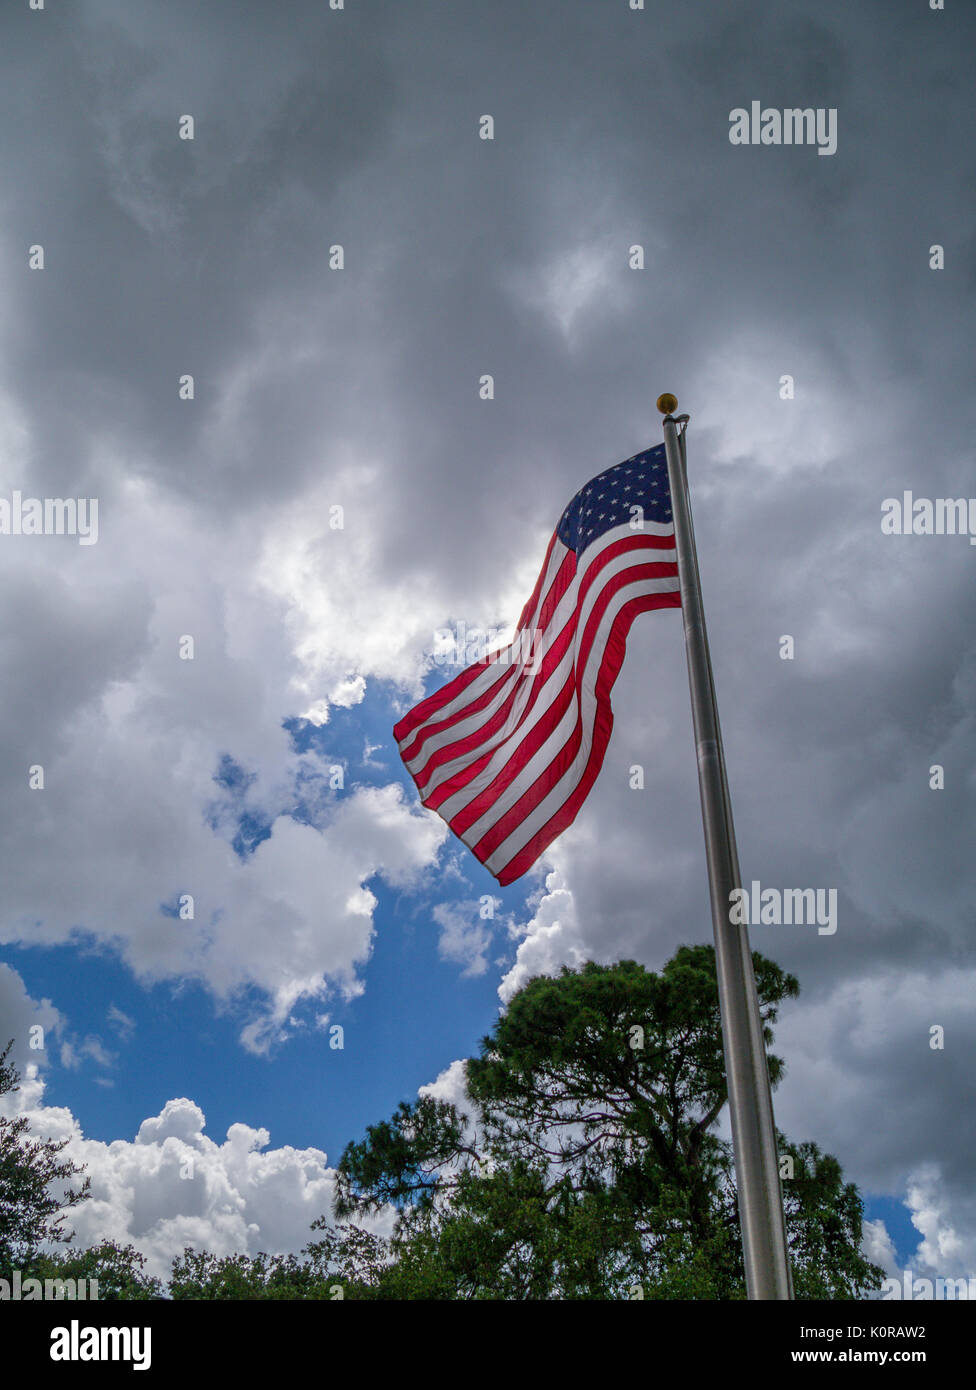 American flag flying aganist a dark cloudy sky - Stock Image